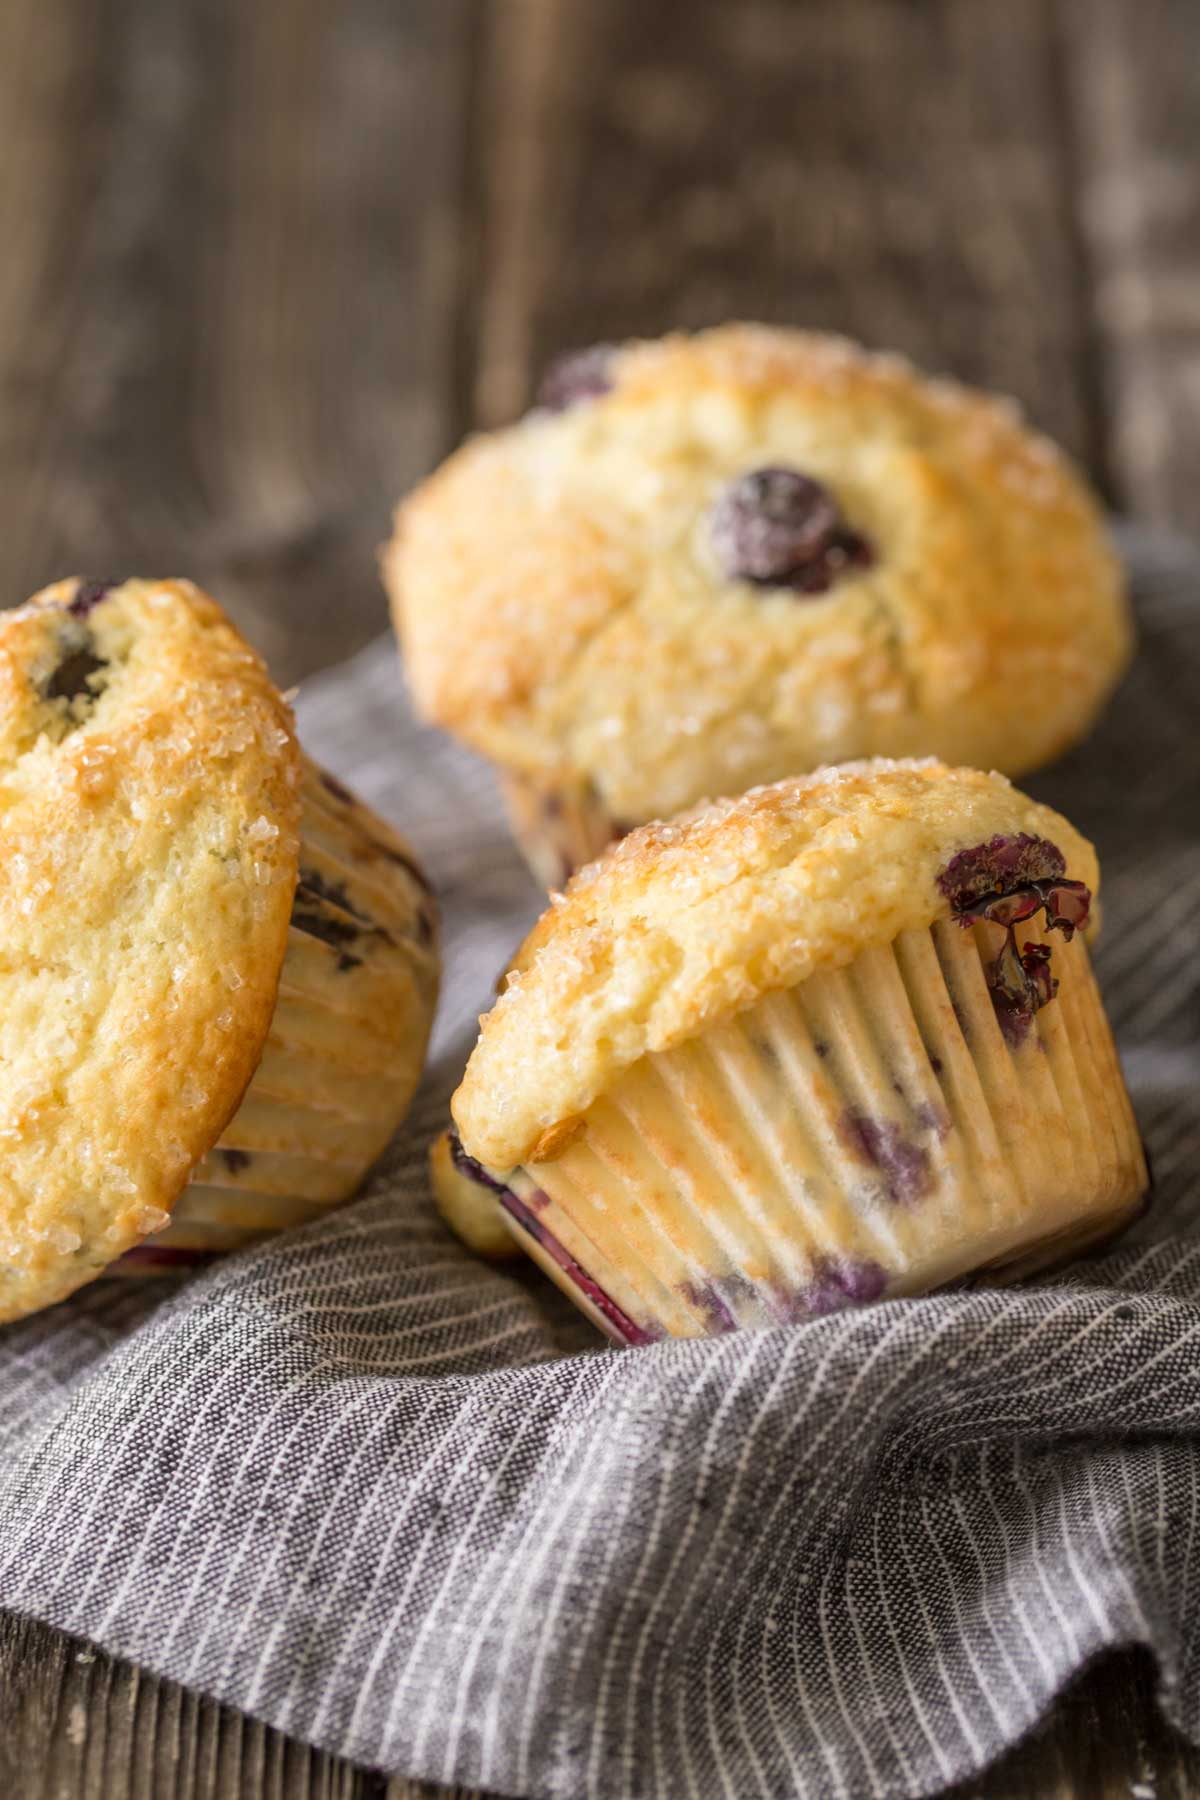 Three Best Ever Buttermilk Blueberry Muffins on a kitchen towel.